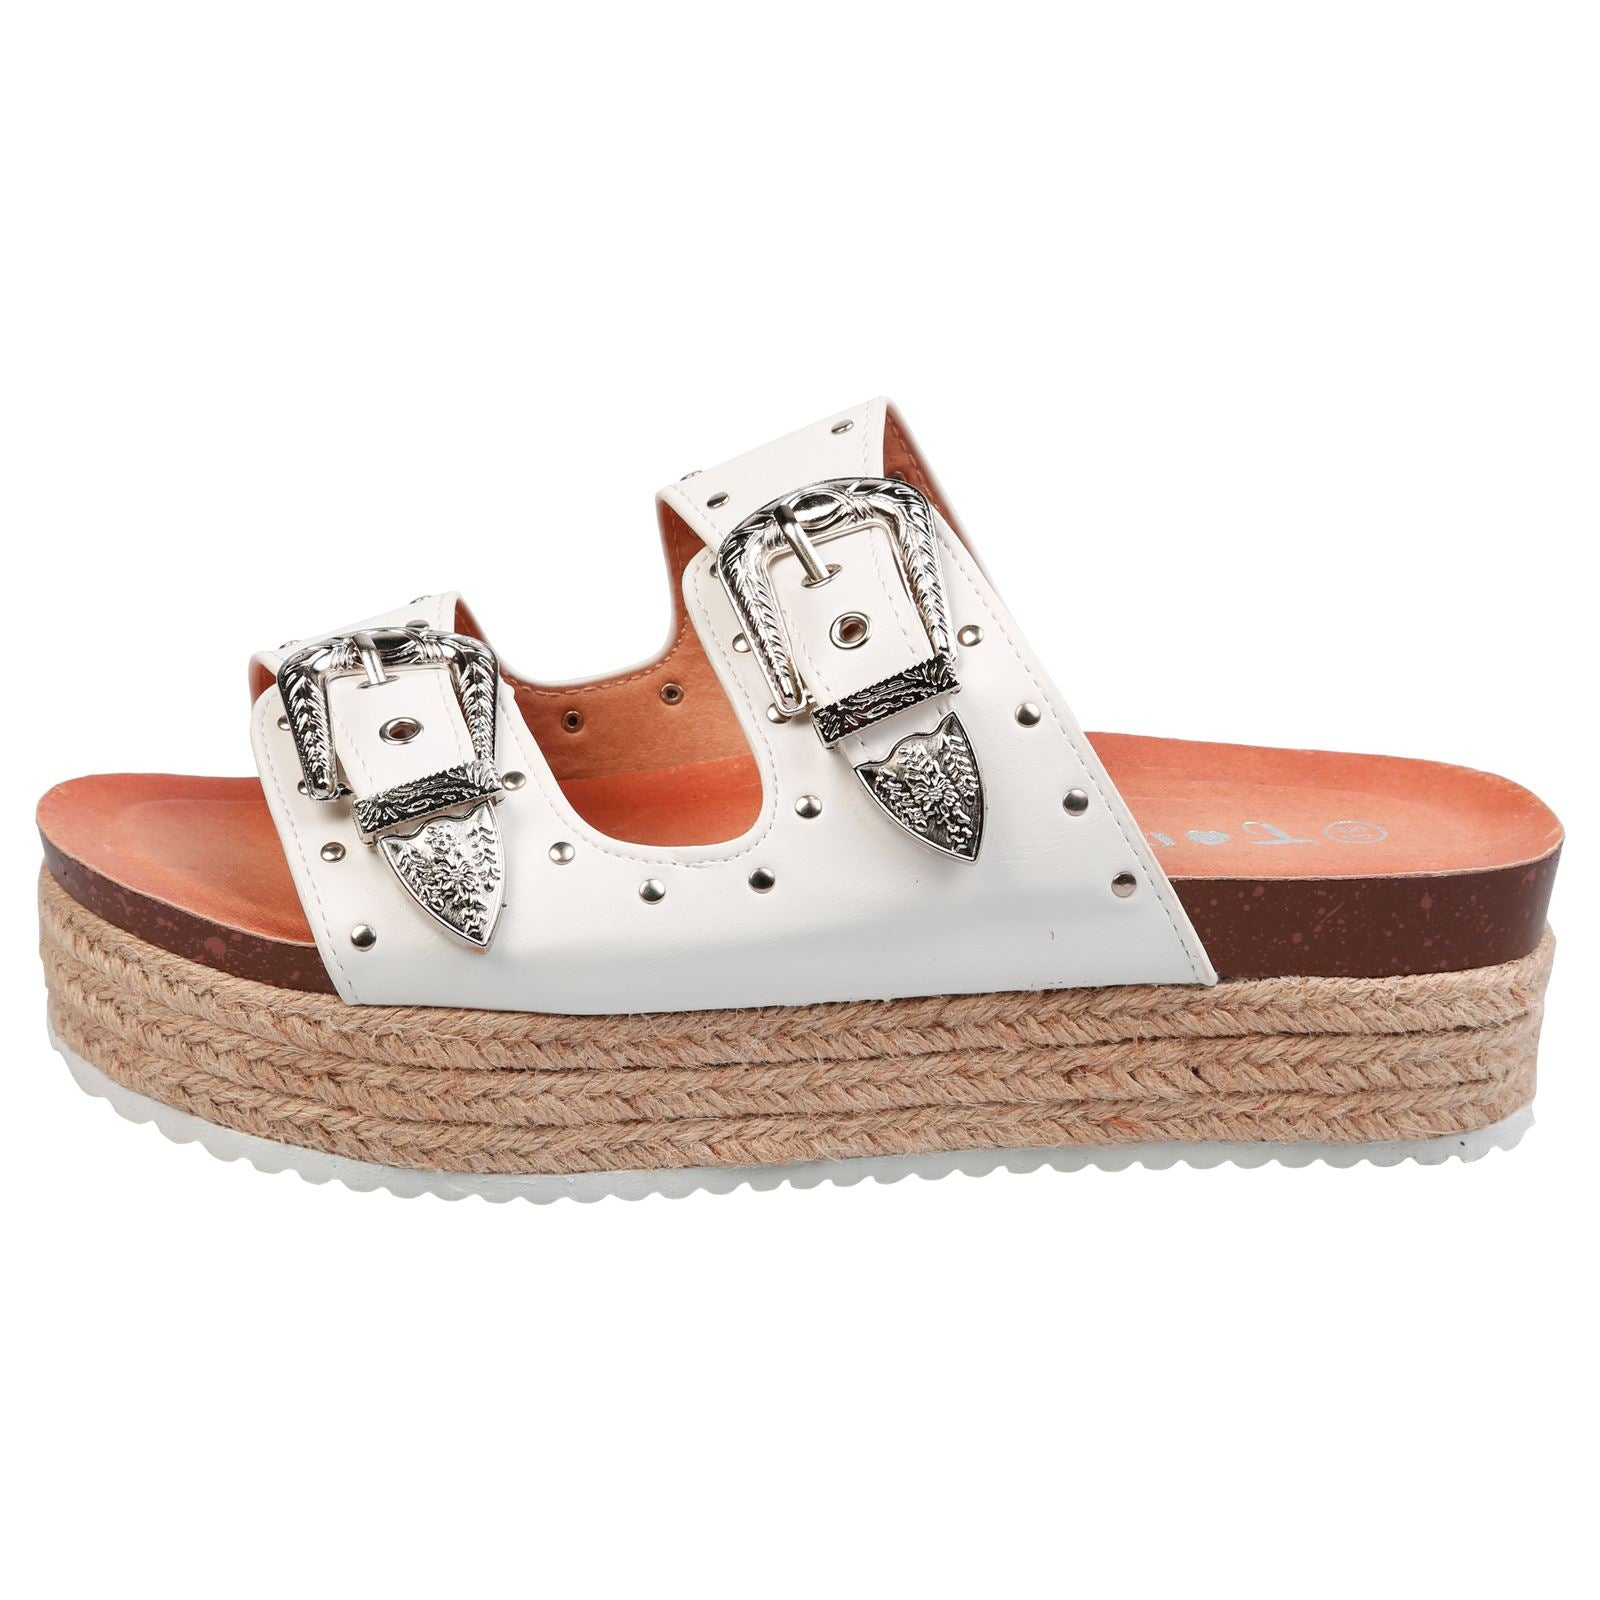 Gianna Buckle Detail Flatform Espadrille Sliders in White Faux Leather